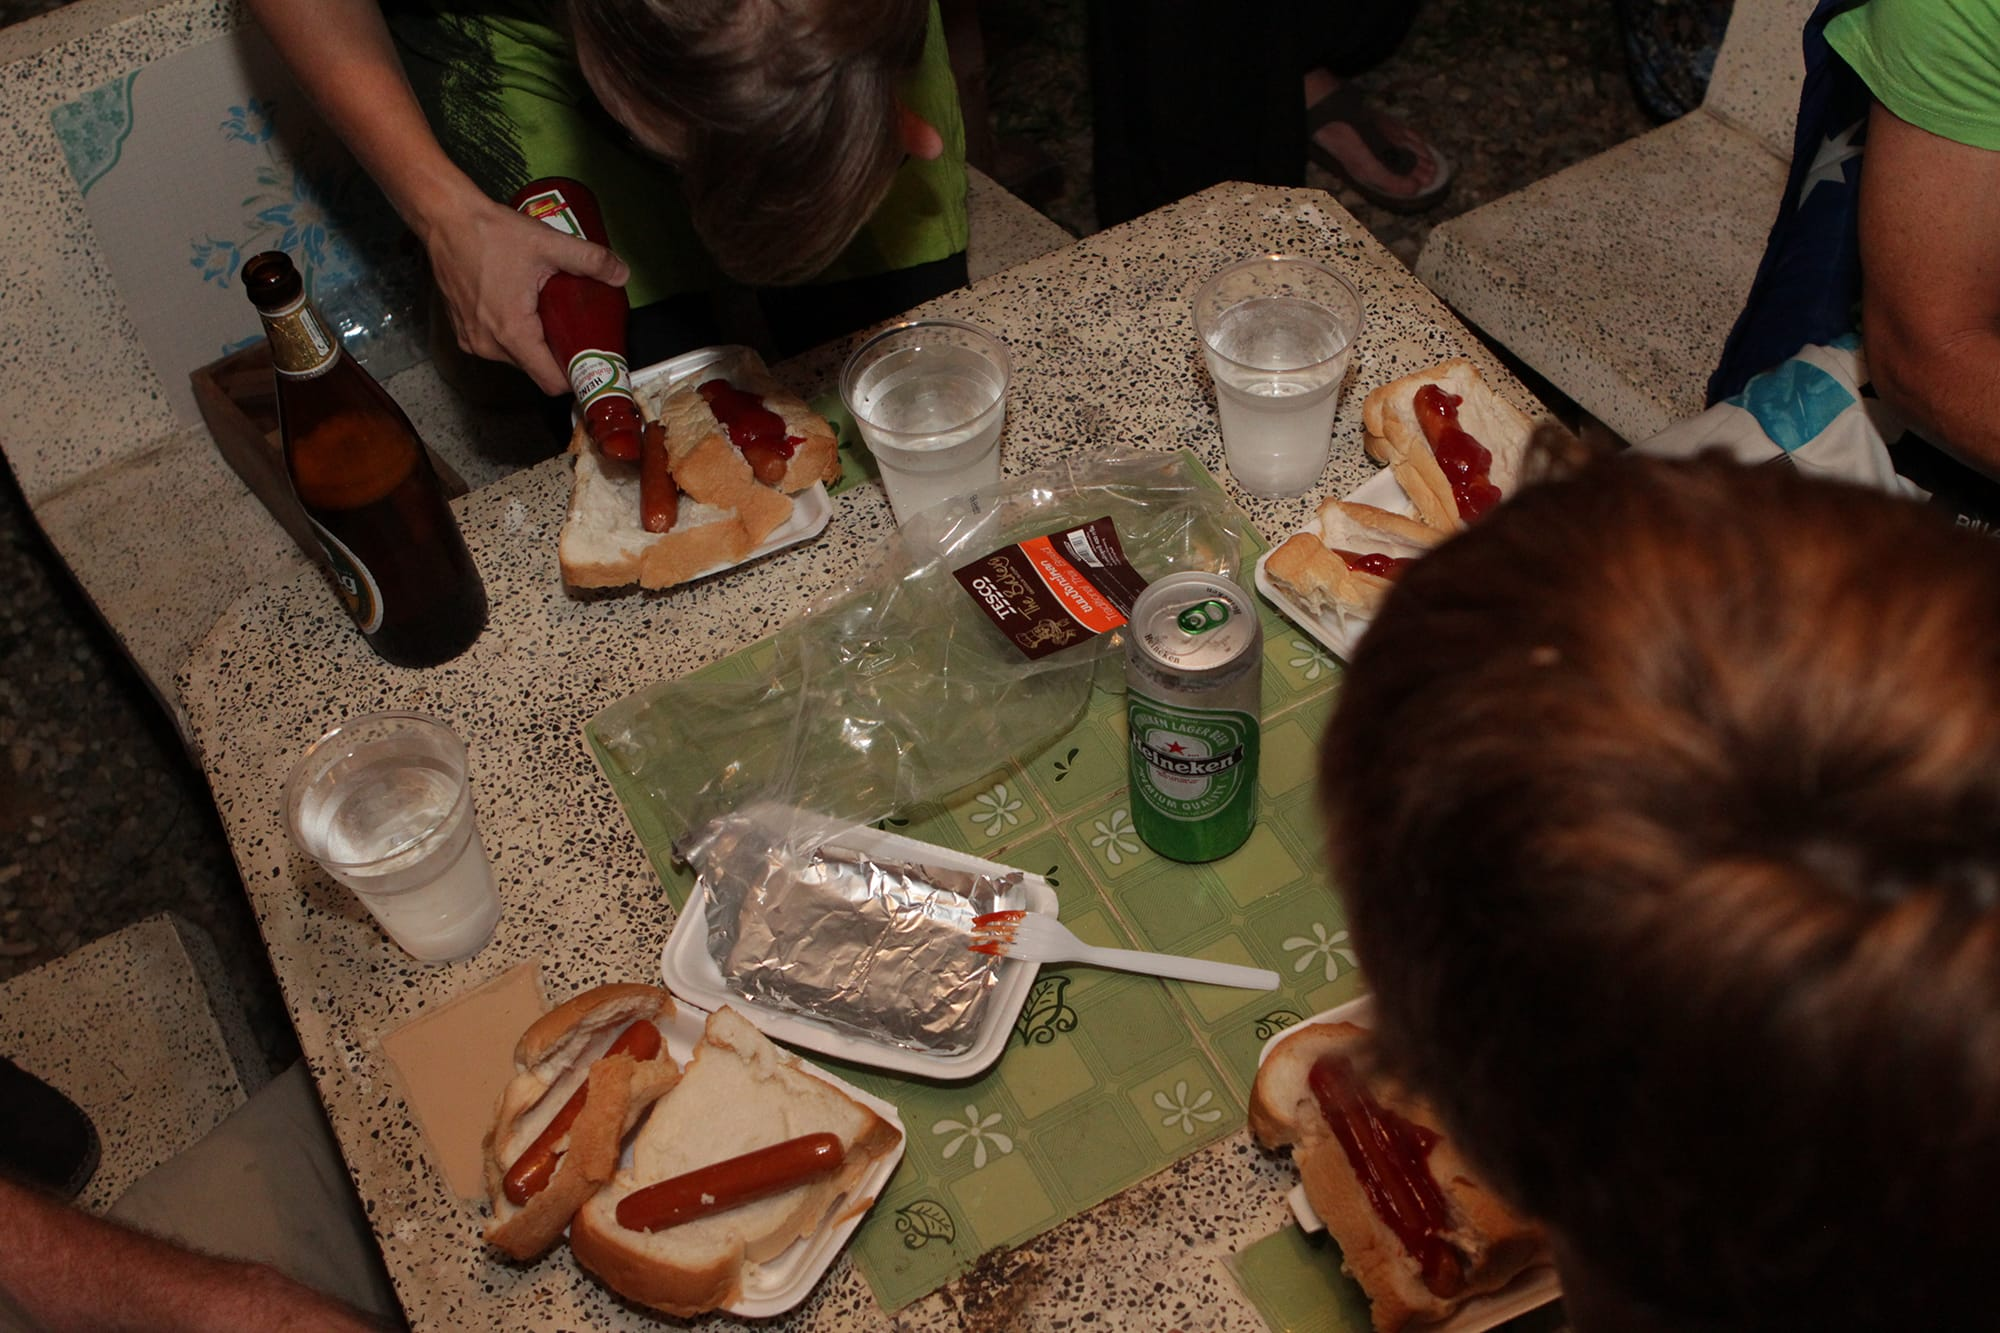 Fourth of July hot dog eating contest at Deejai Backpackers in Chiang Mai, Thailand